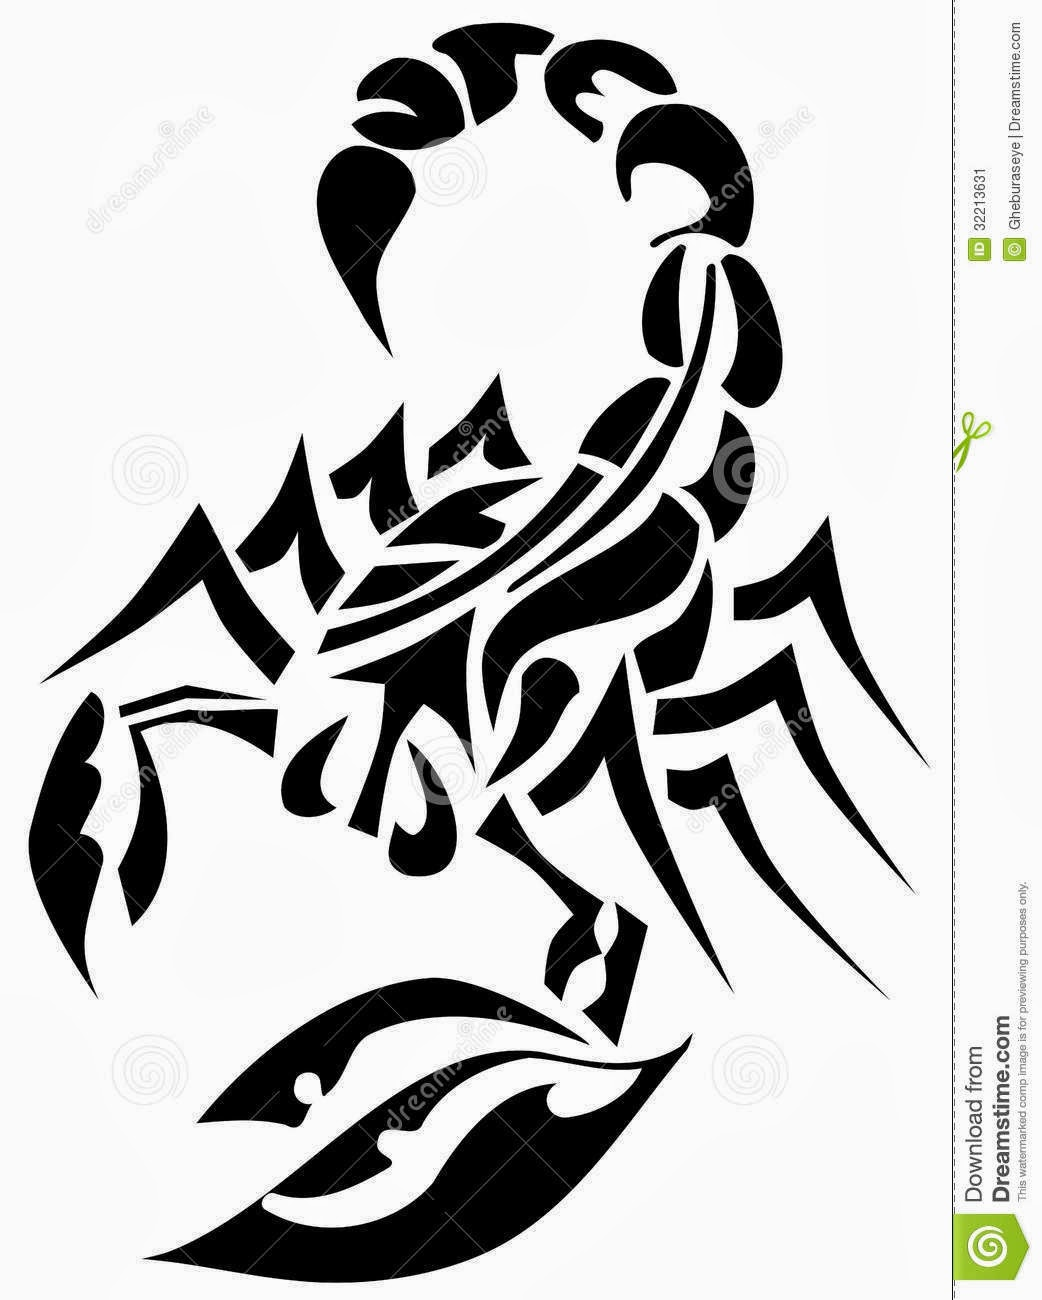 tatouage de scorpion tribal - Tatouage Scorpion Banque D'Images 123RF